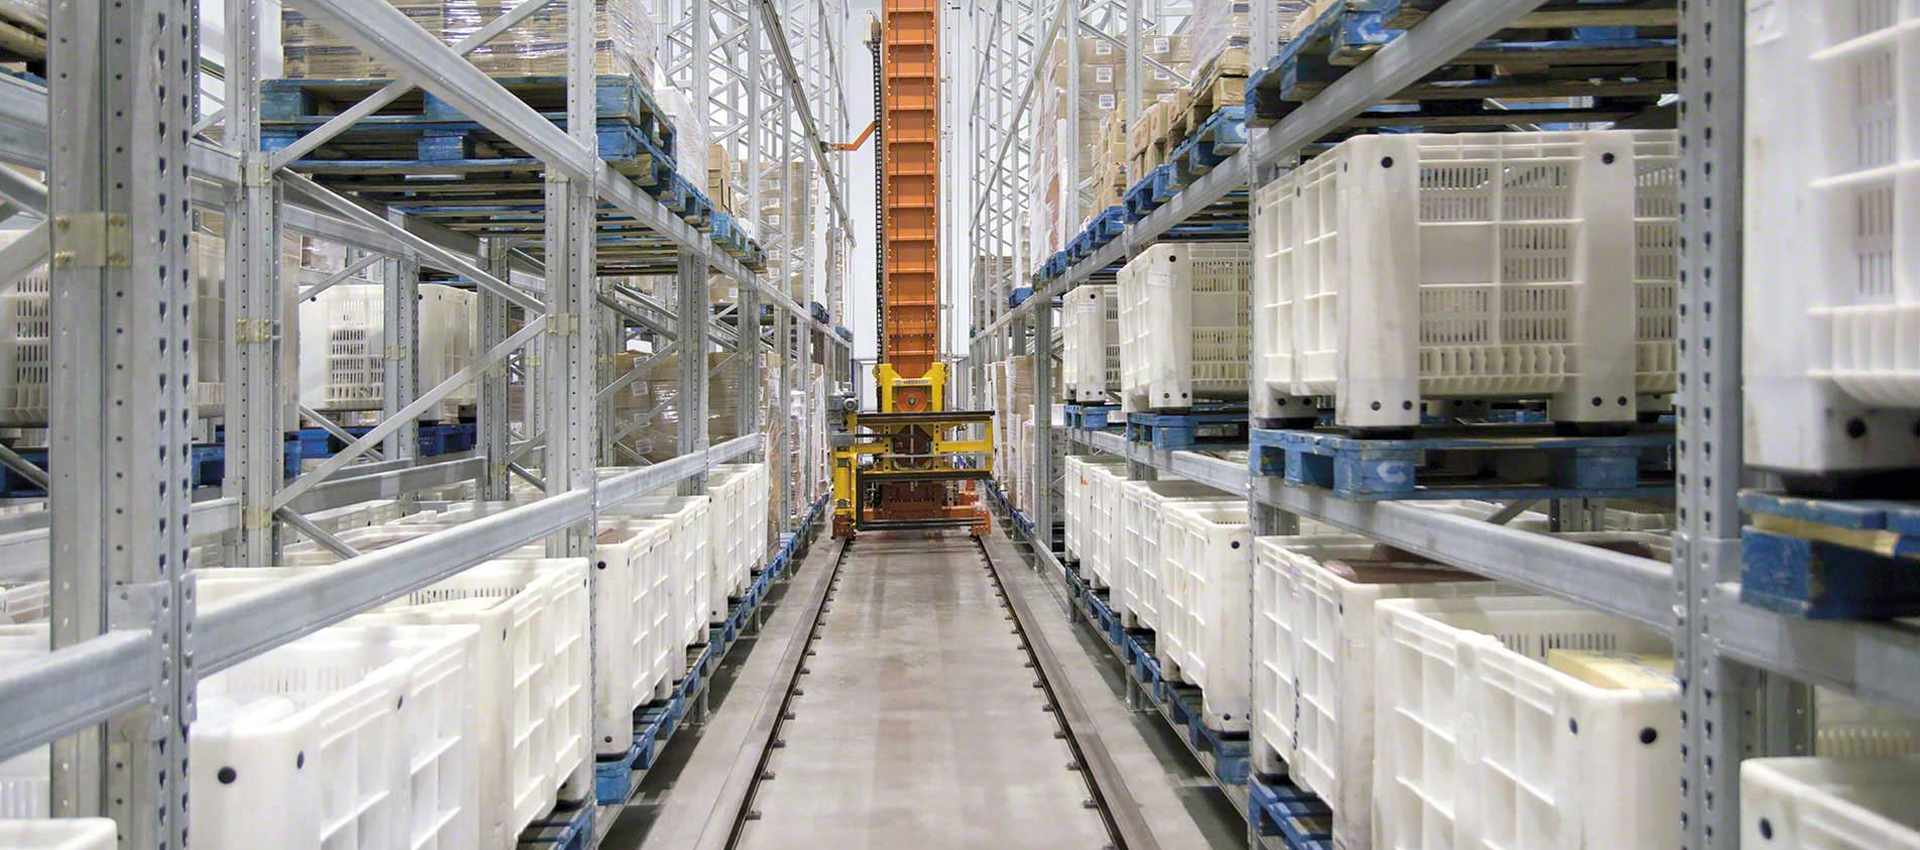 4 Warehouse Automation Technologies That Are Transforming the Industry